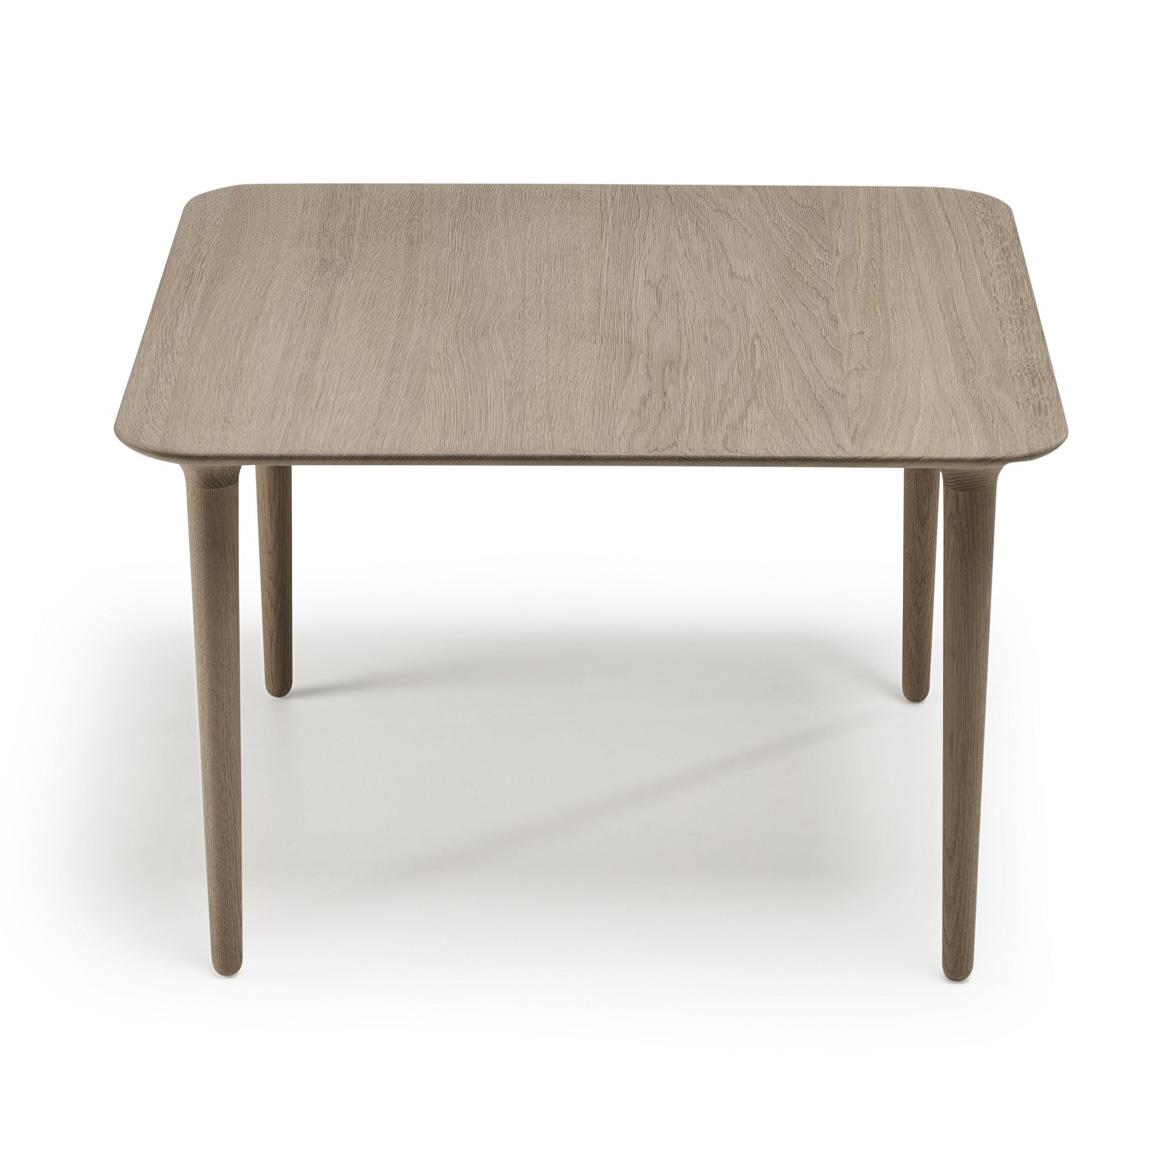 Evja Coffee Table. Eik Såpebehandlet. 70x70cm. H45cm.